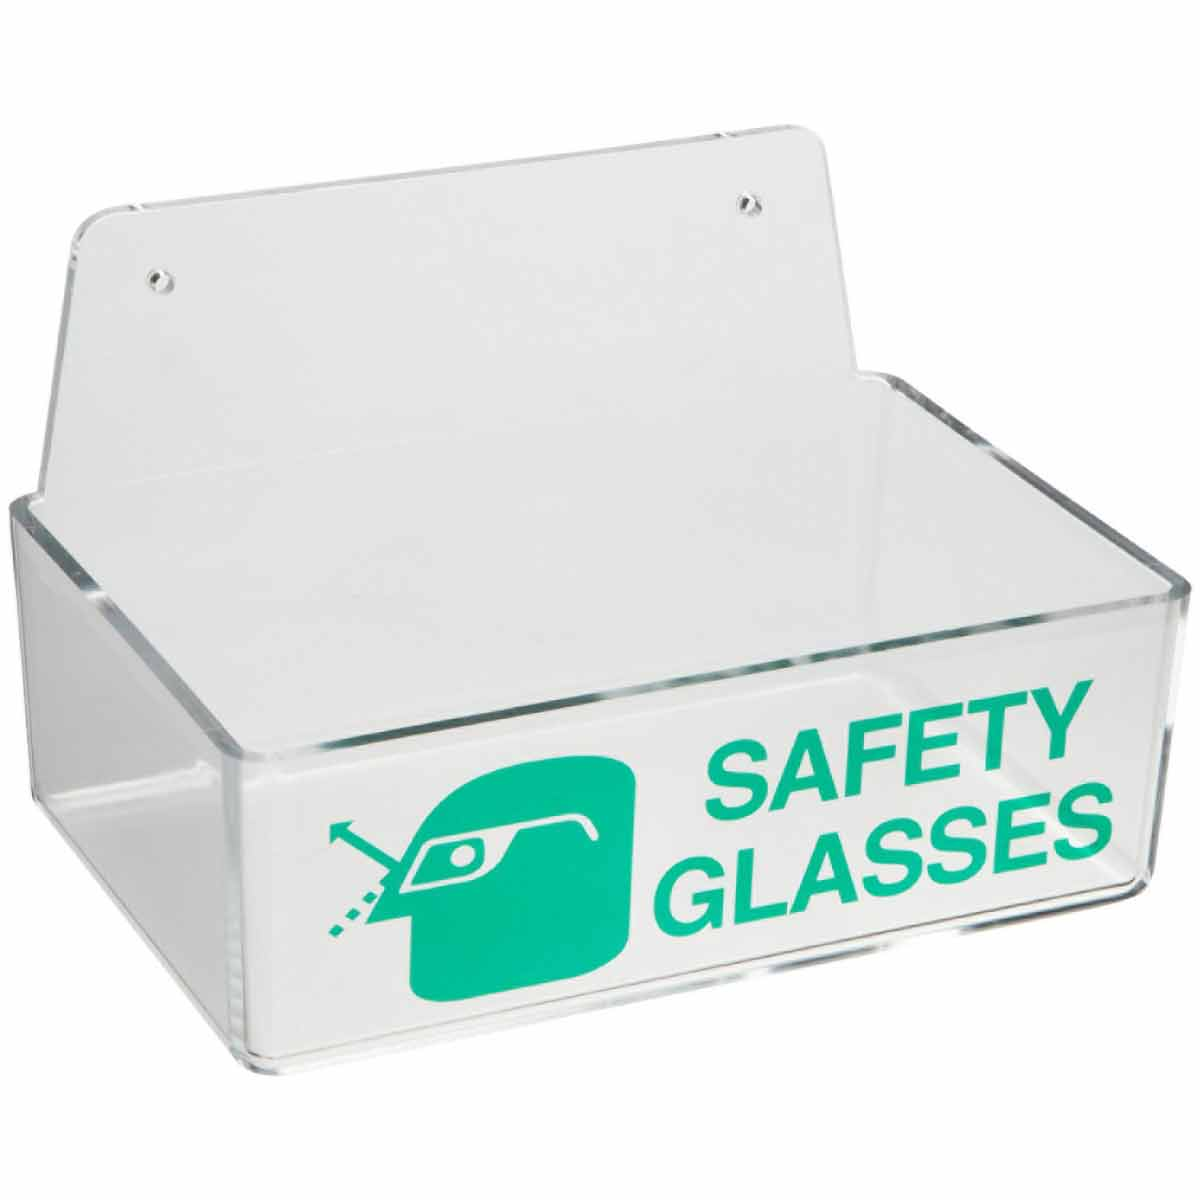 3M™ 078371-62141 Infrared Welding Flip-Up Lens, Anti-Scratch Green Shade 3.0 IR Polycarbonate Lens, For Use With Aviator Style Safety Eyewear